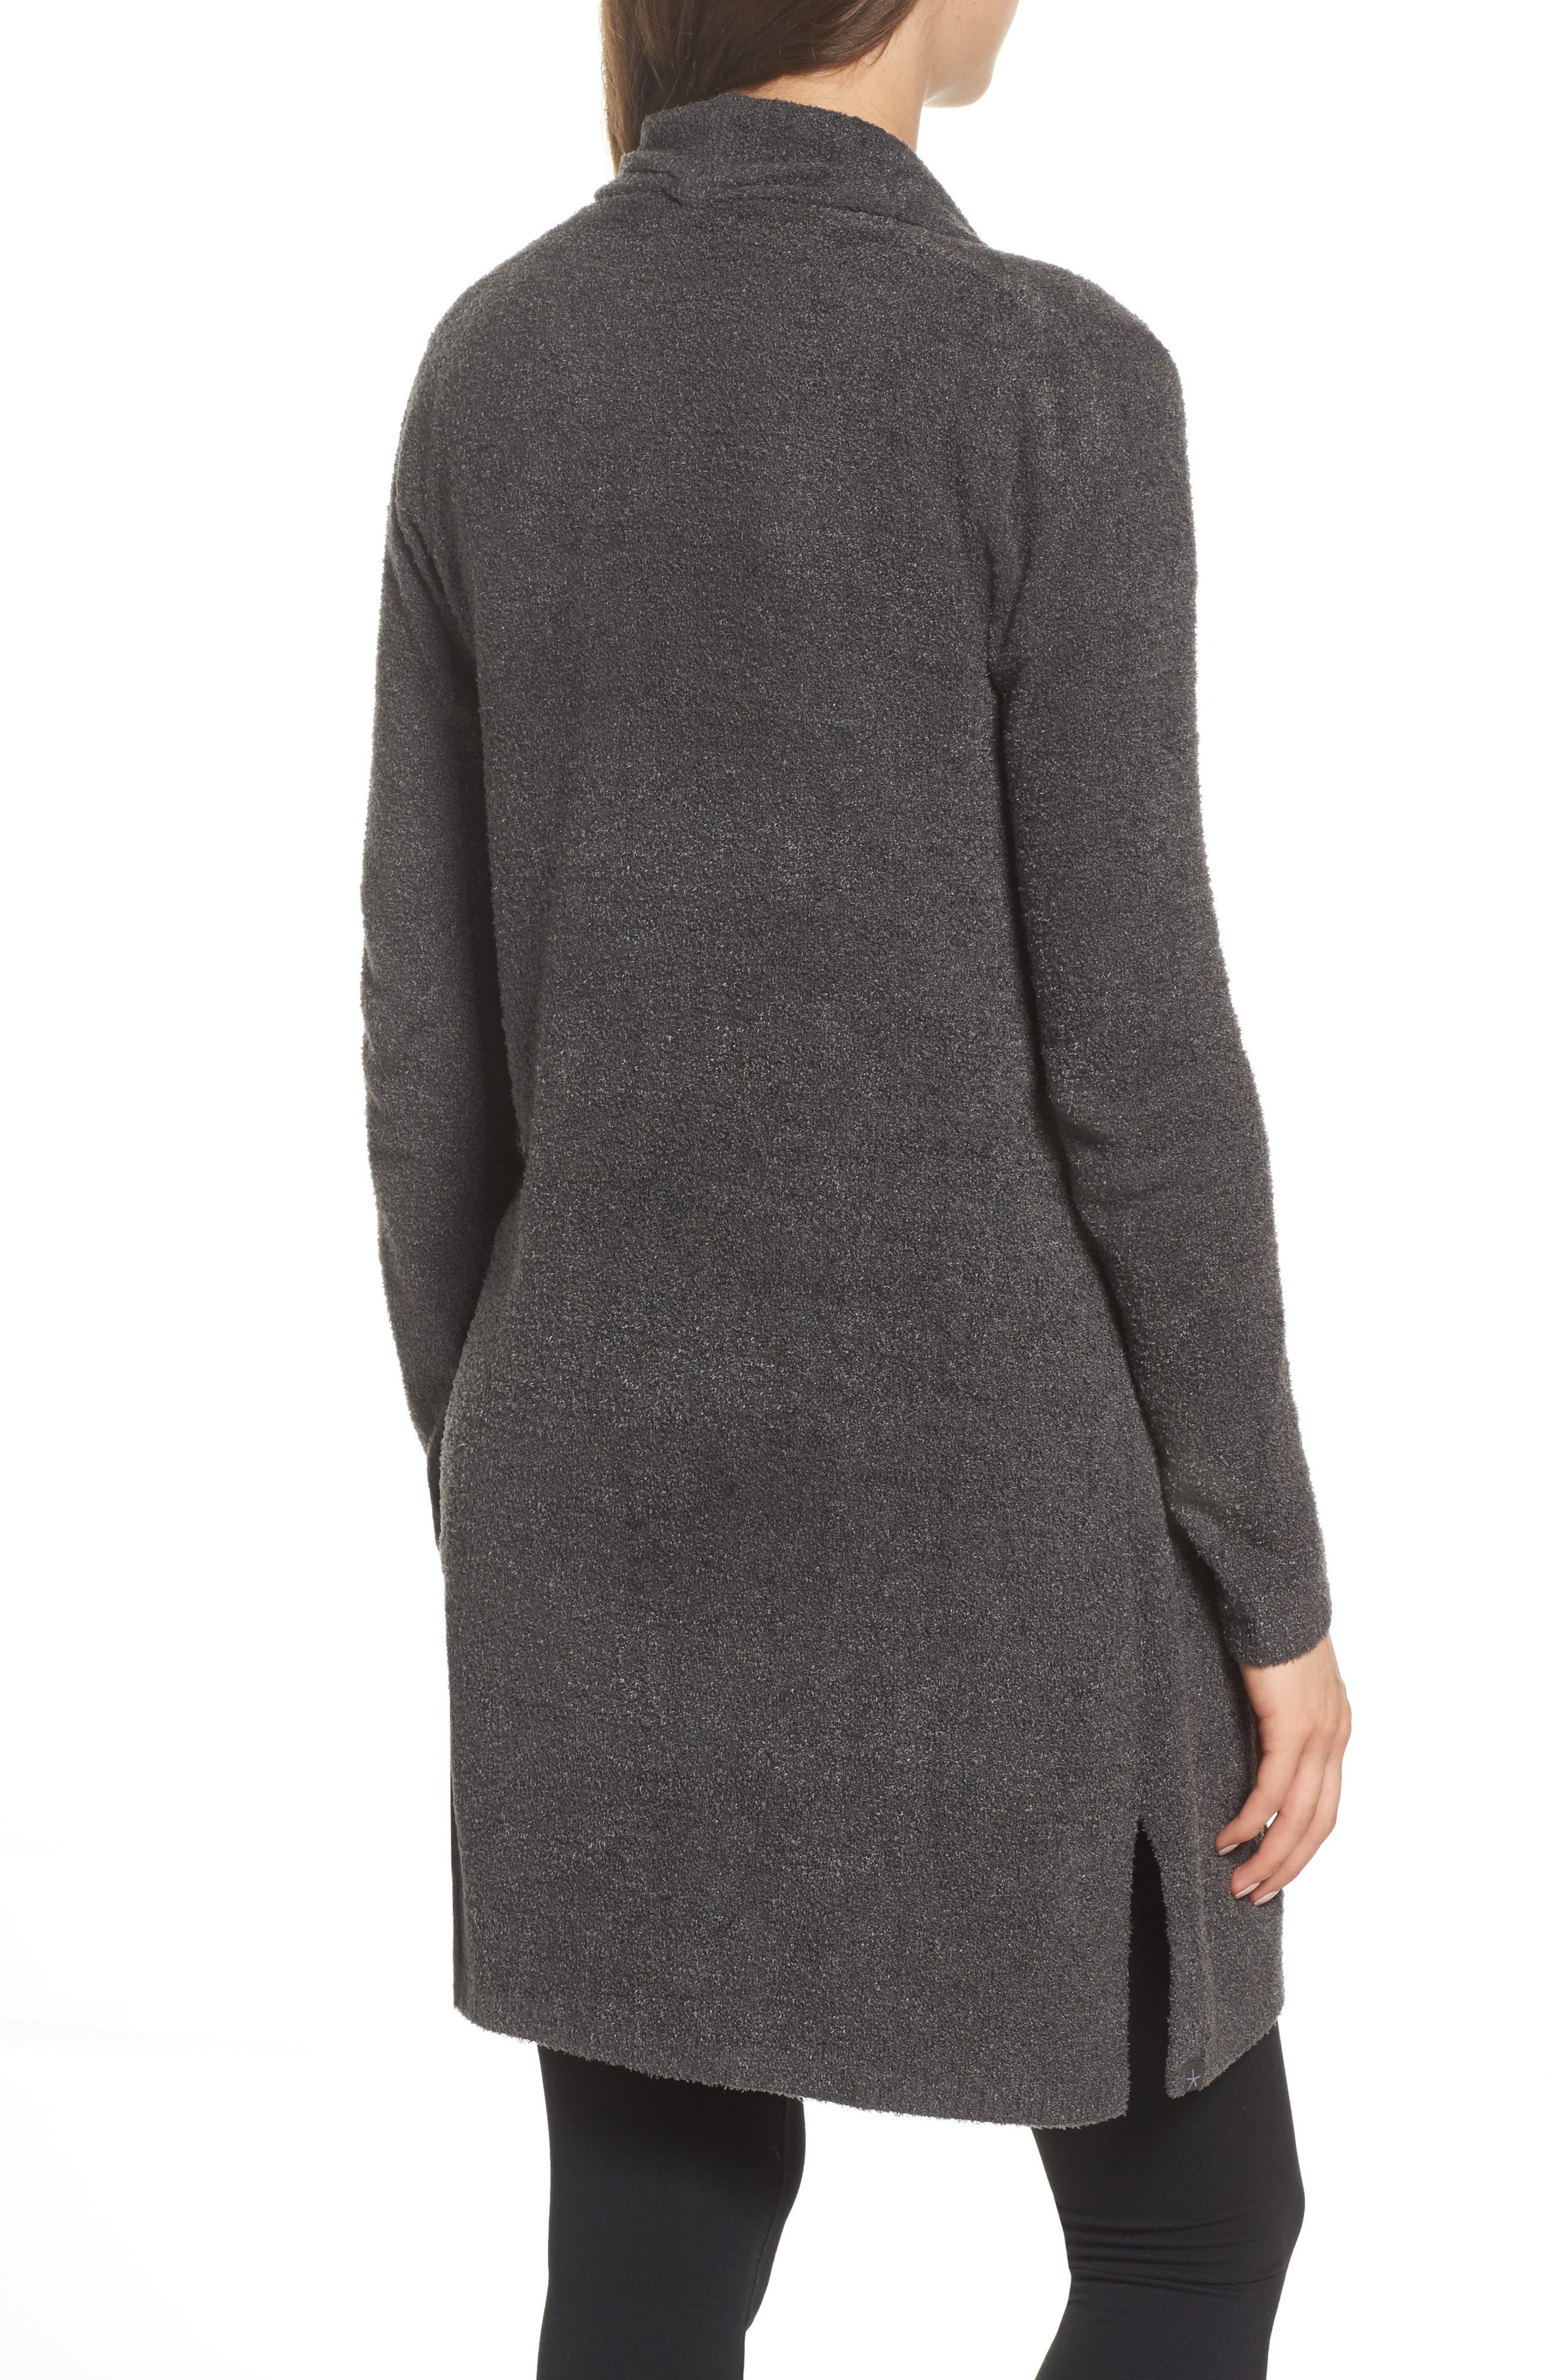 Barefoot Dreams Essential Cardigan,                             Alternate thumbnail 2, color,                             Carbon